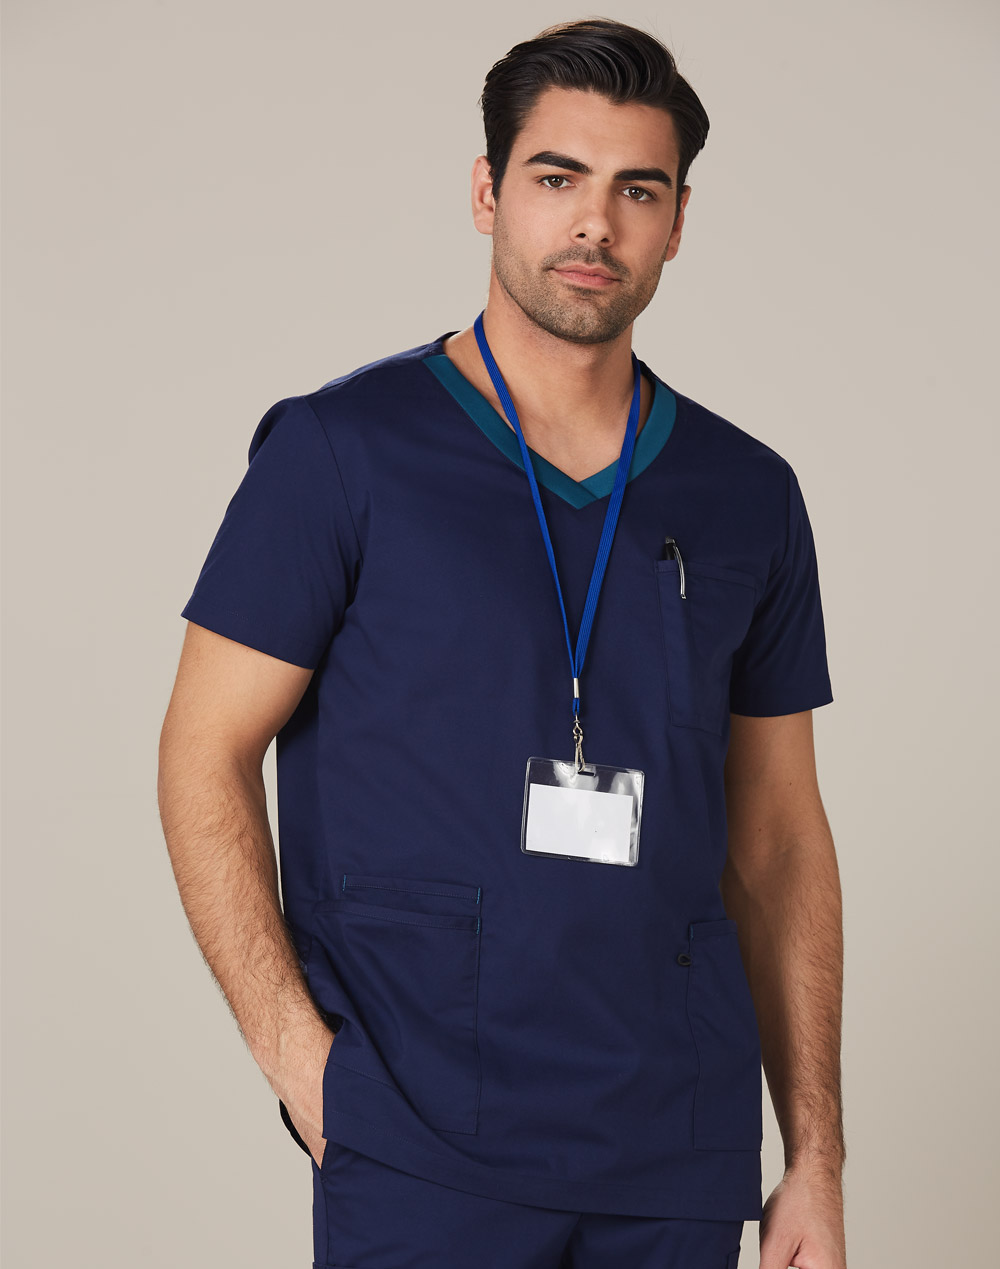 Buy Mens v-Neck Contrast Trim Scrub Tops in Perth